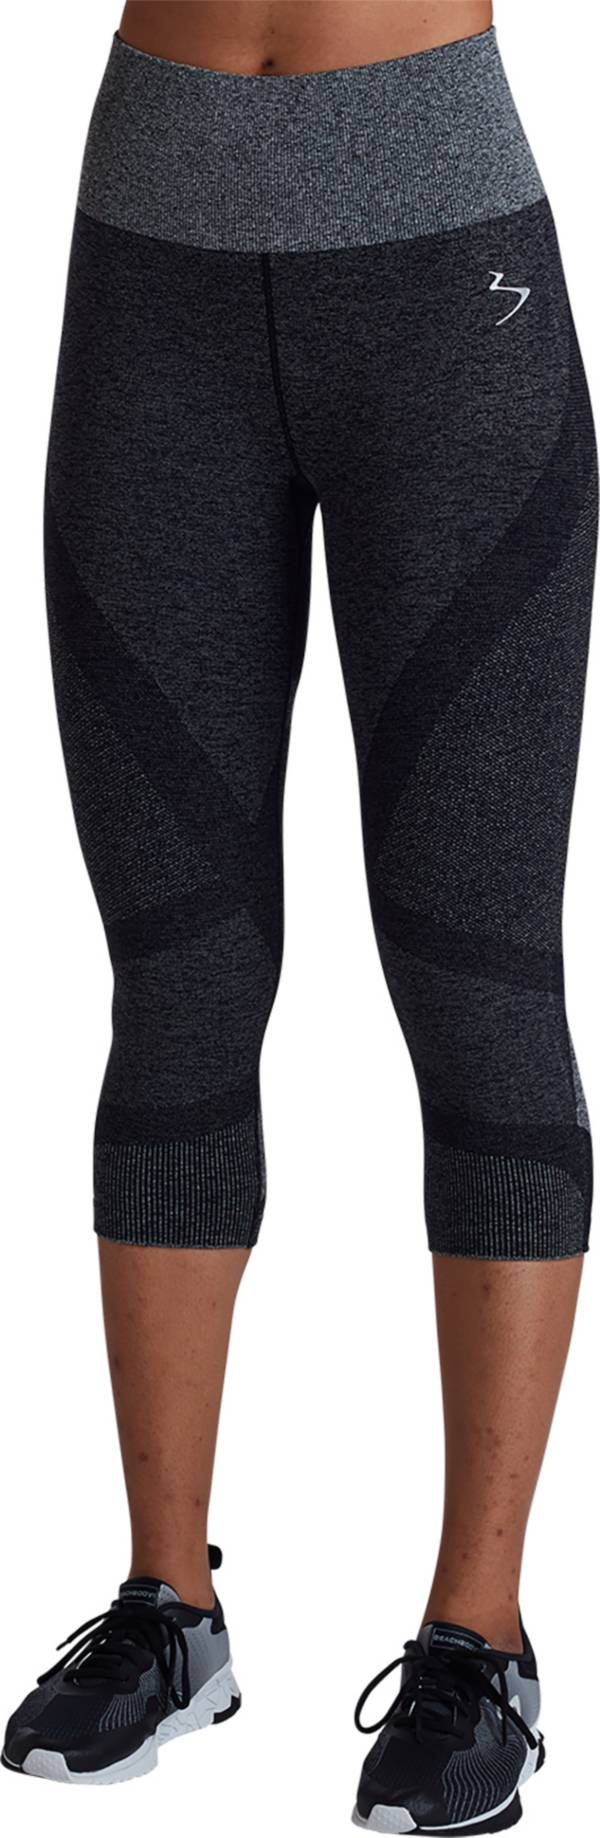 Beachbody Women's Intent Cropped Compression Tights product image